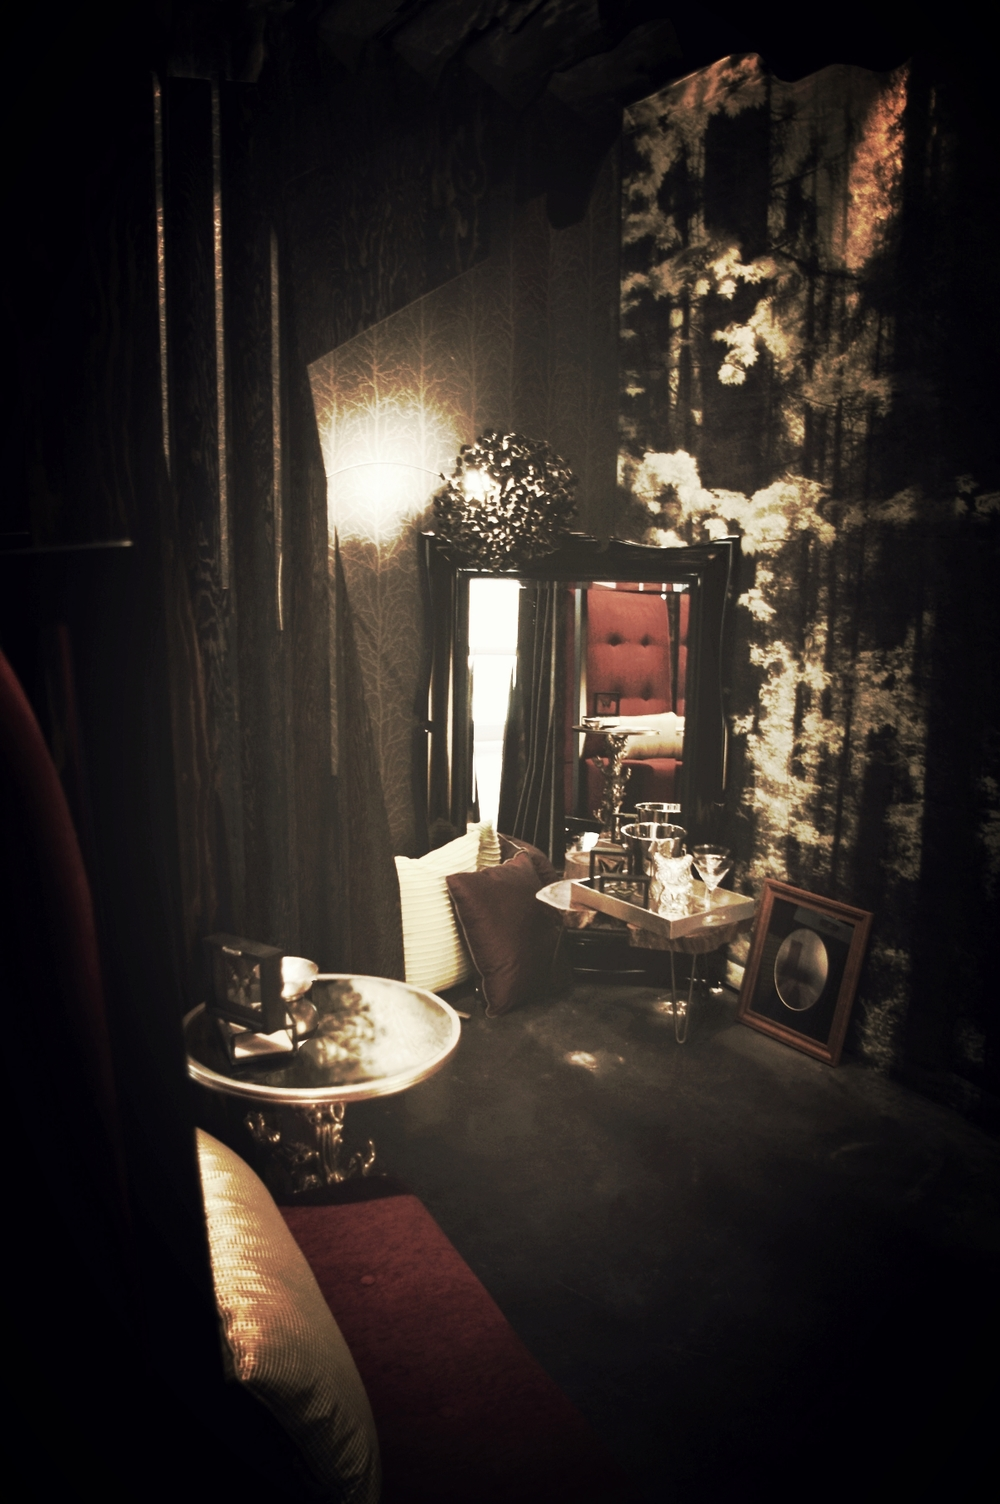 17_Dark Fairytale_Interior2.jpg